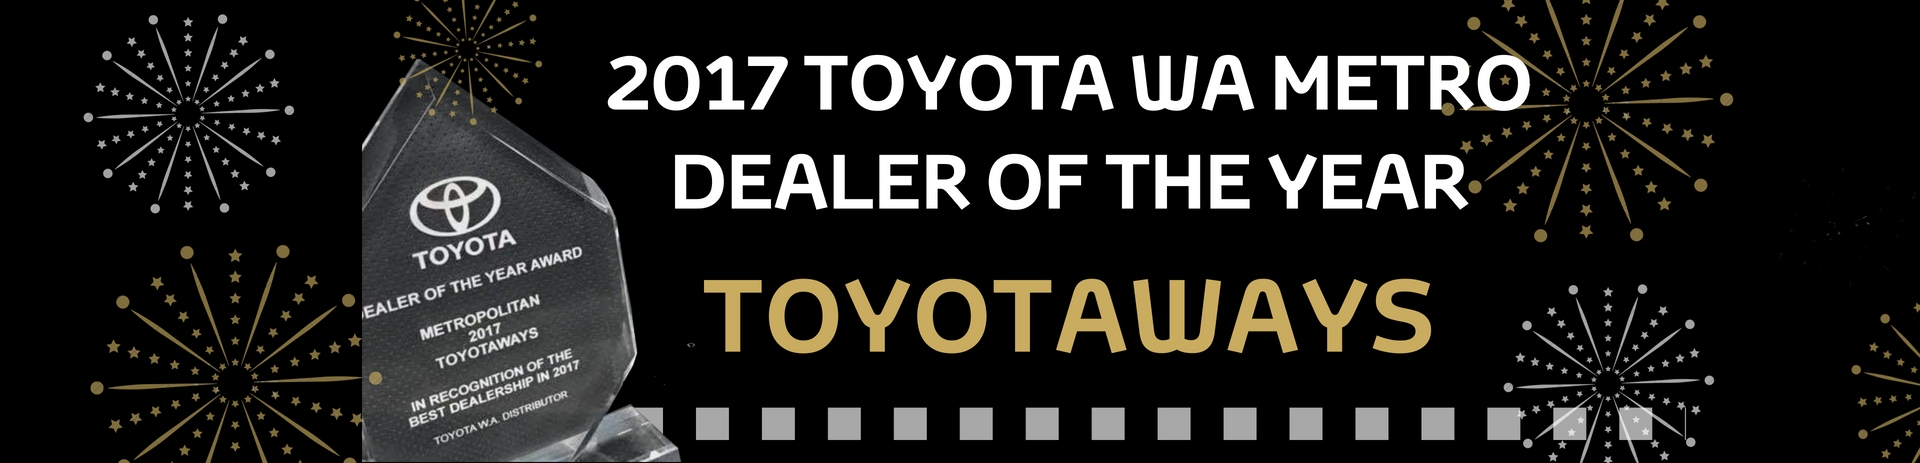 About Toyotaways